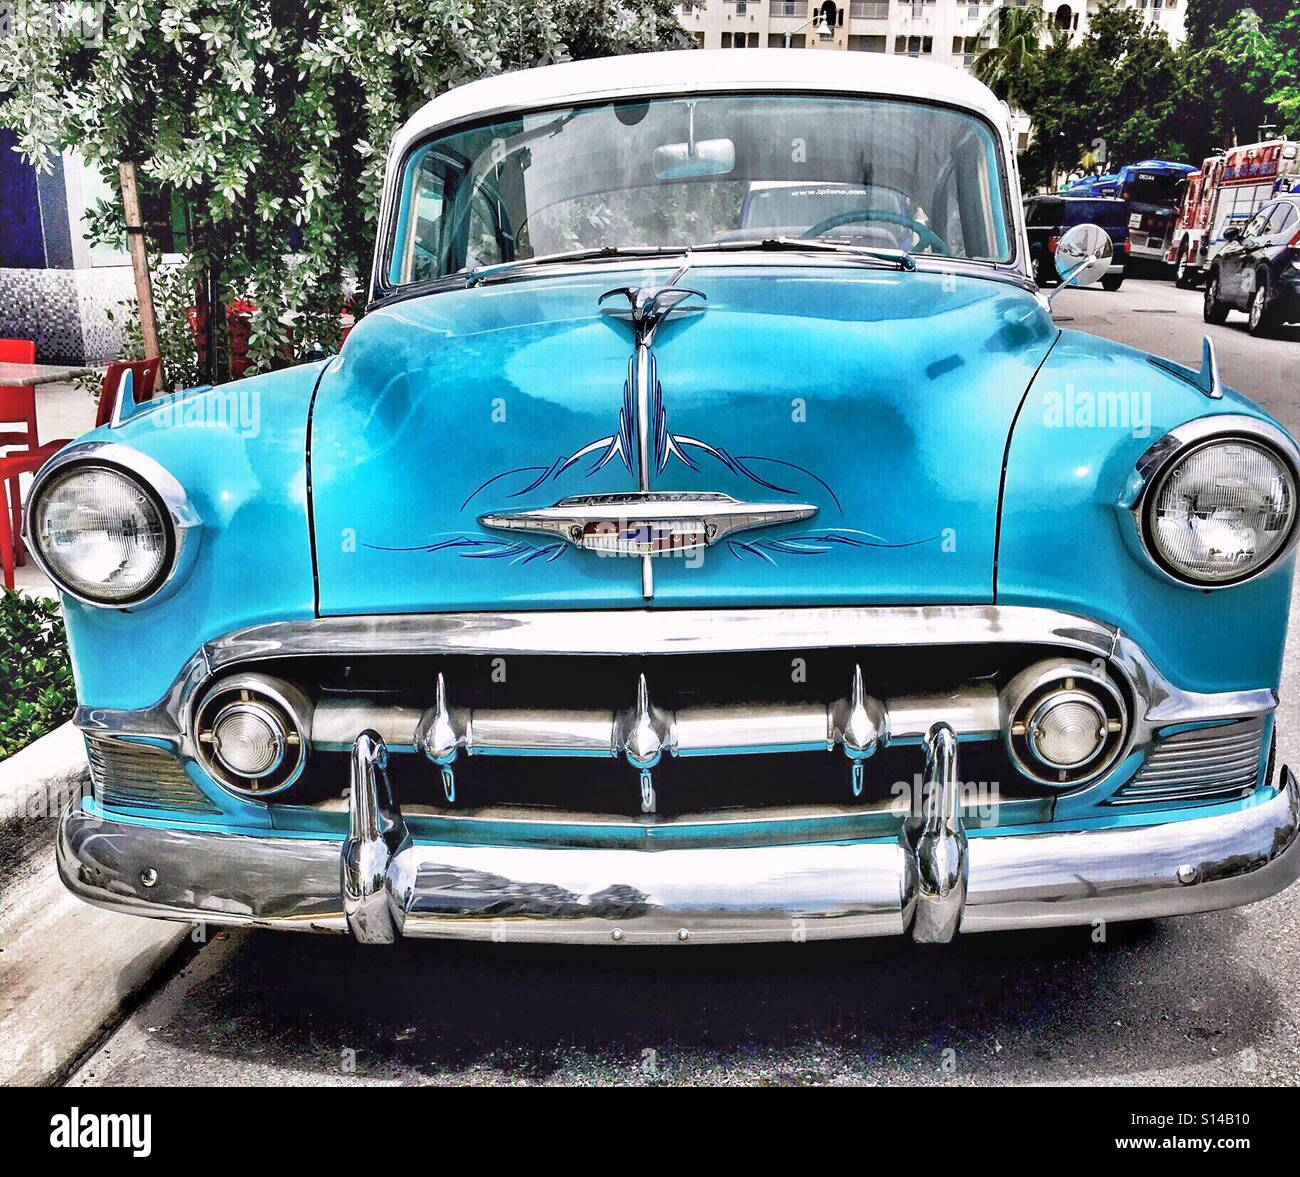 All Chevy chevy 210 : 1953 Chevy 210 classic American Car Stock Photo, Royalty Free ...